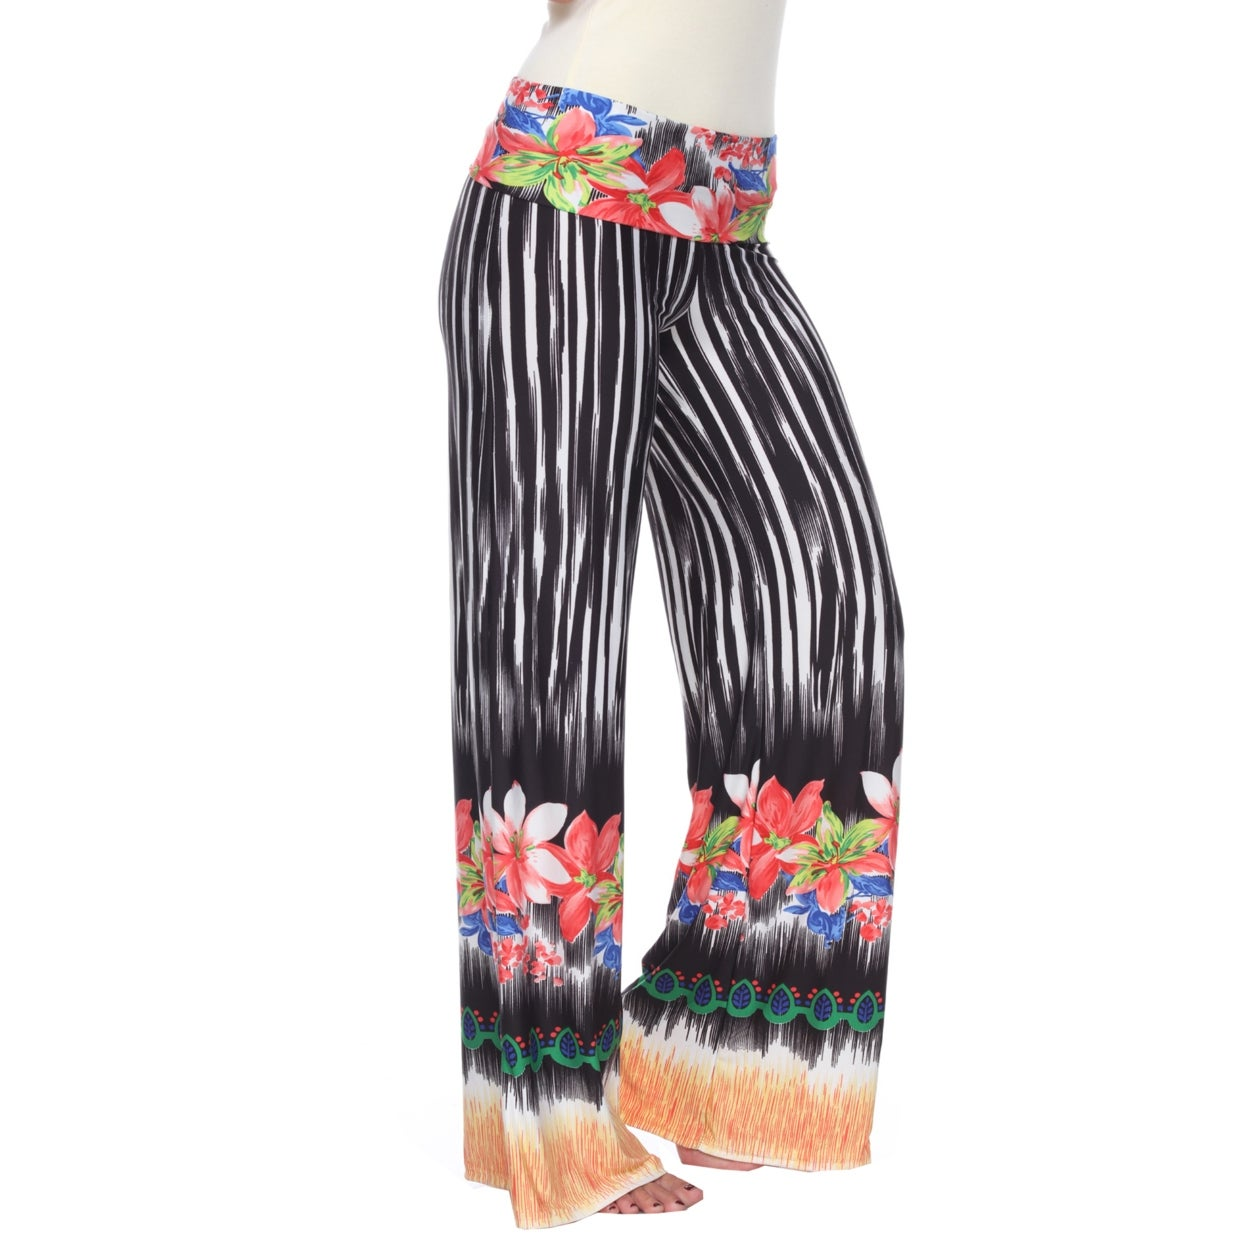 d6e75bdeb1be8 Shop Tropicana Print Palazzo Pants - Black & White - On Sale - Ships To  Canada - Overstock - 23041977